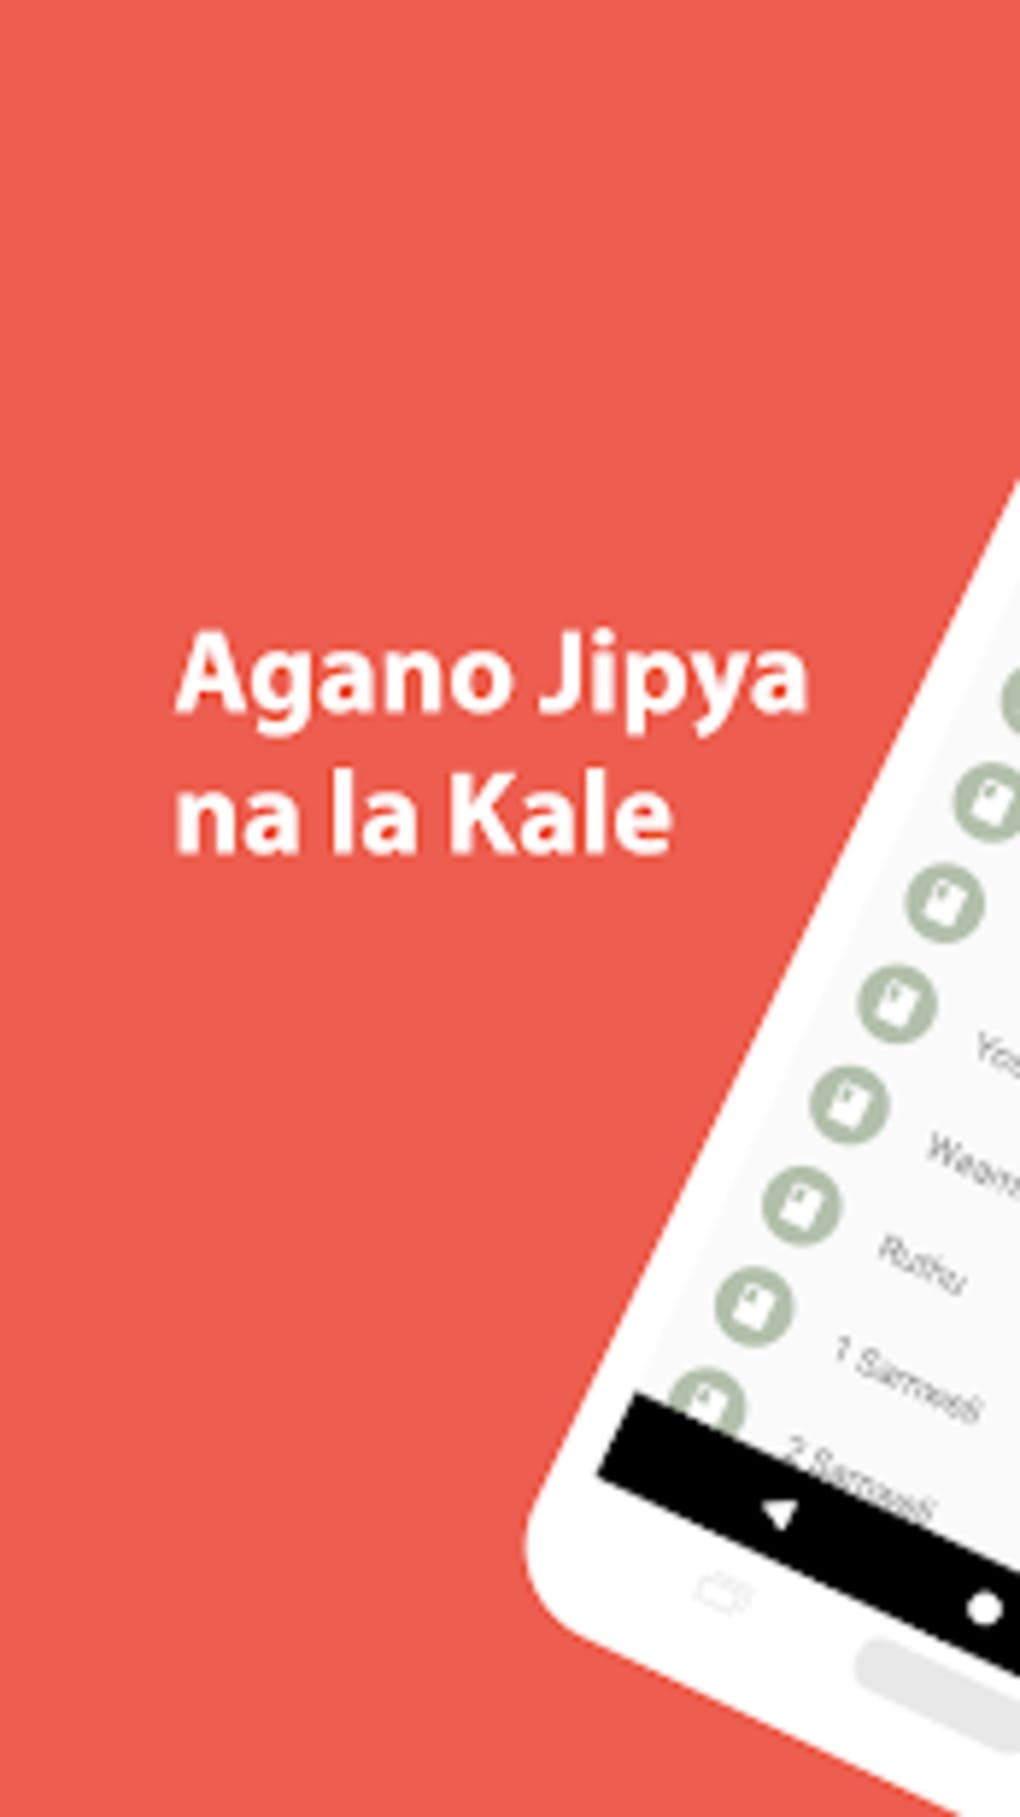 Biblia Takatifu Swahili Bible Offline Apk For Android Download